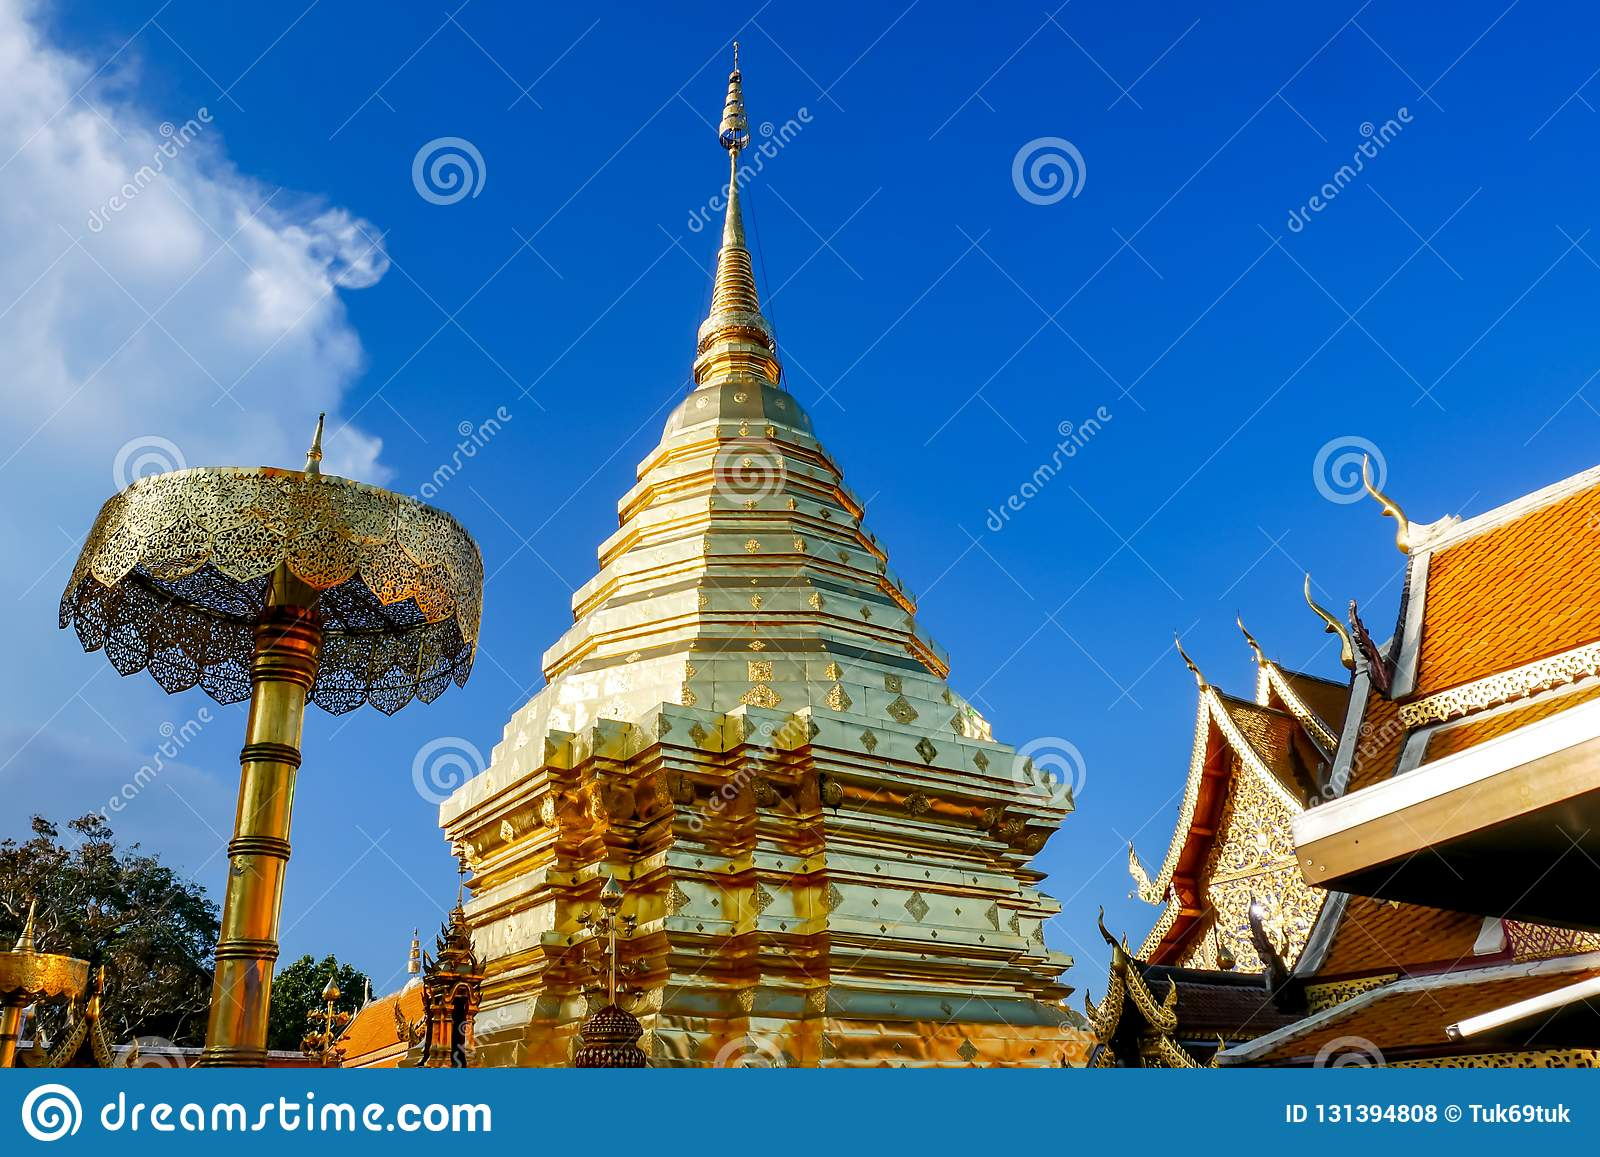 Wat Phra That Doi Suthep is tourist attraction of Chiang Mai, Thailand.Asia